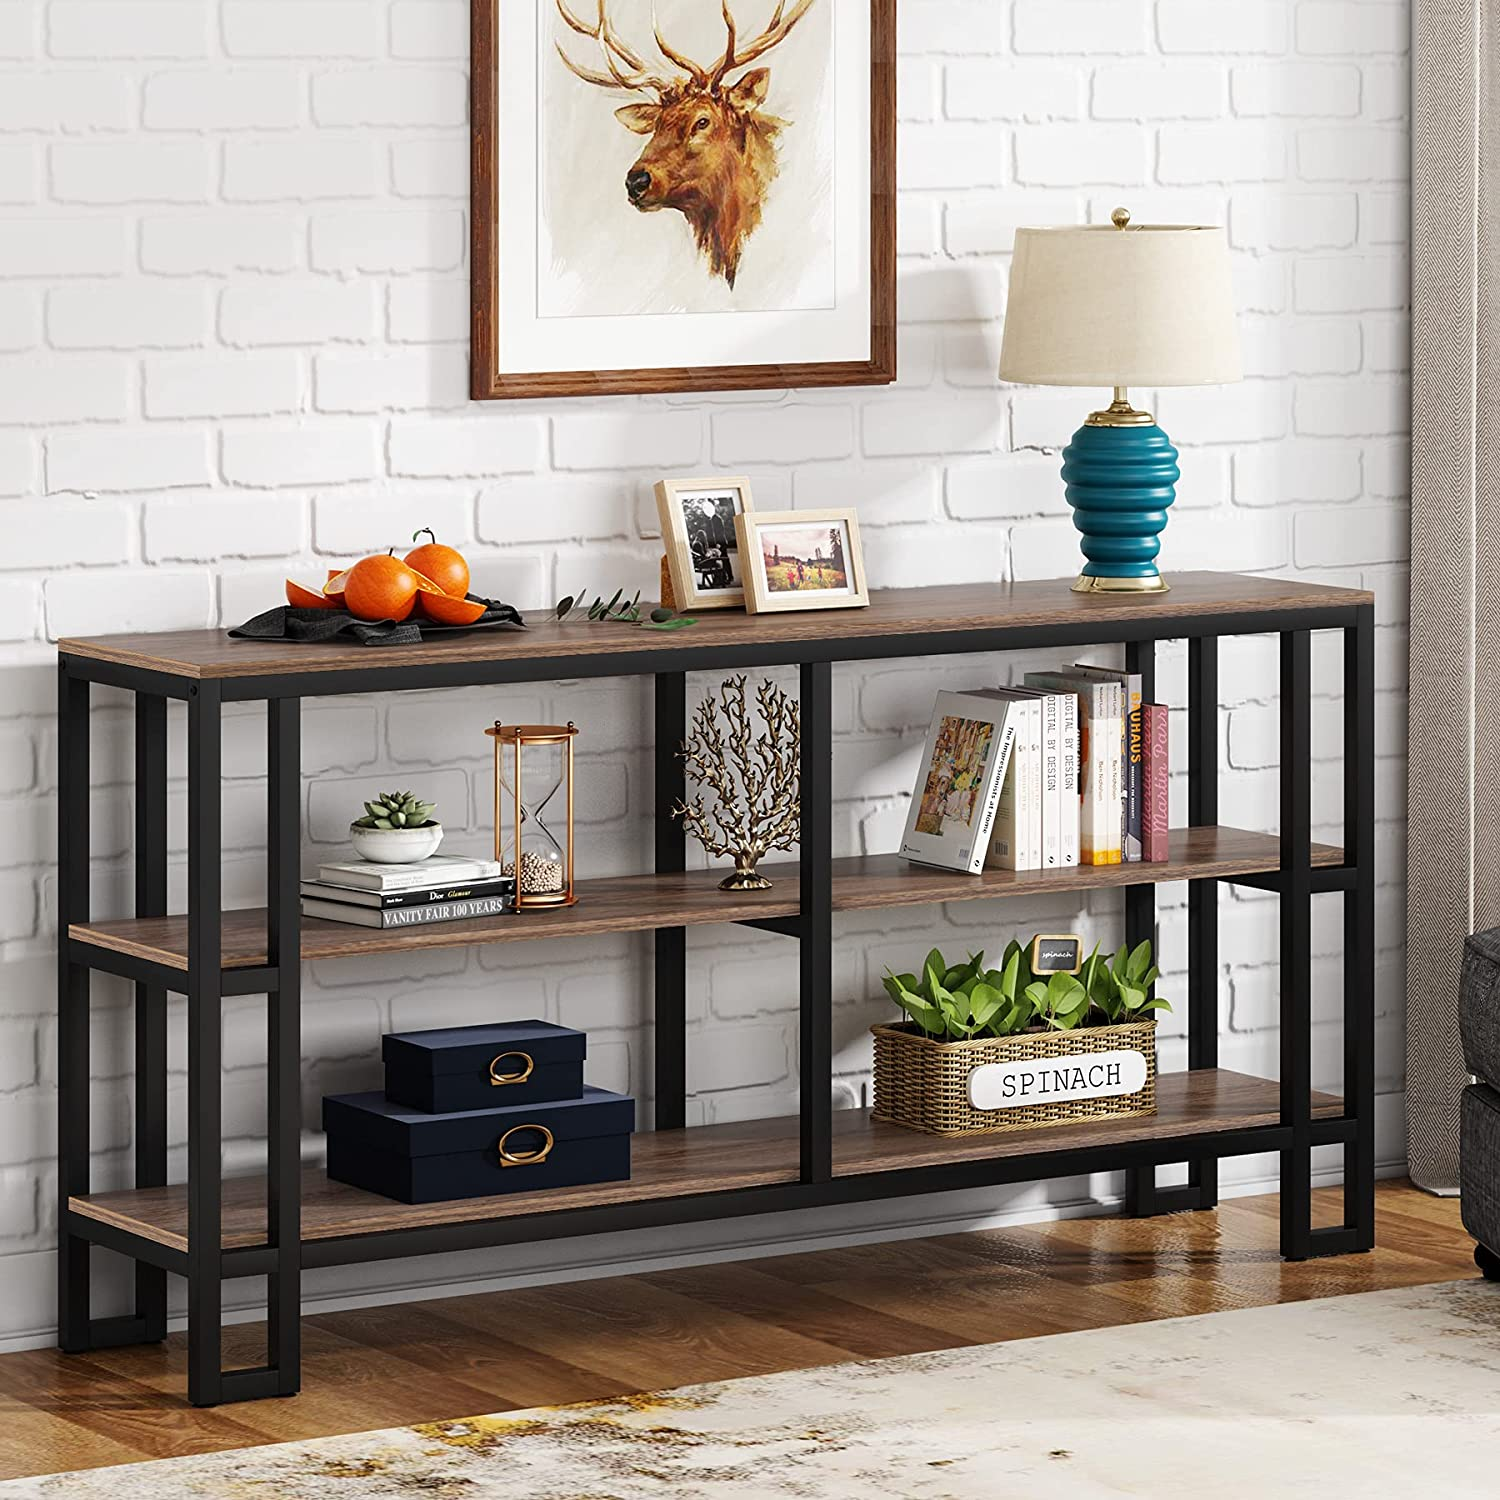 Buy Tribesigns Sofa Table,20.20 inch Long Console Table with 20 Tier ...